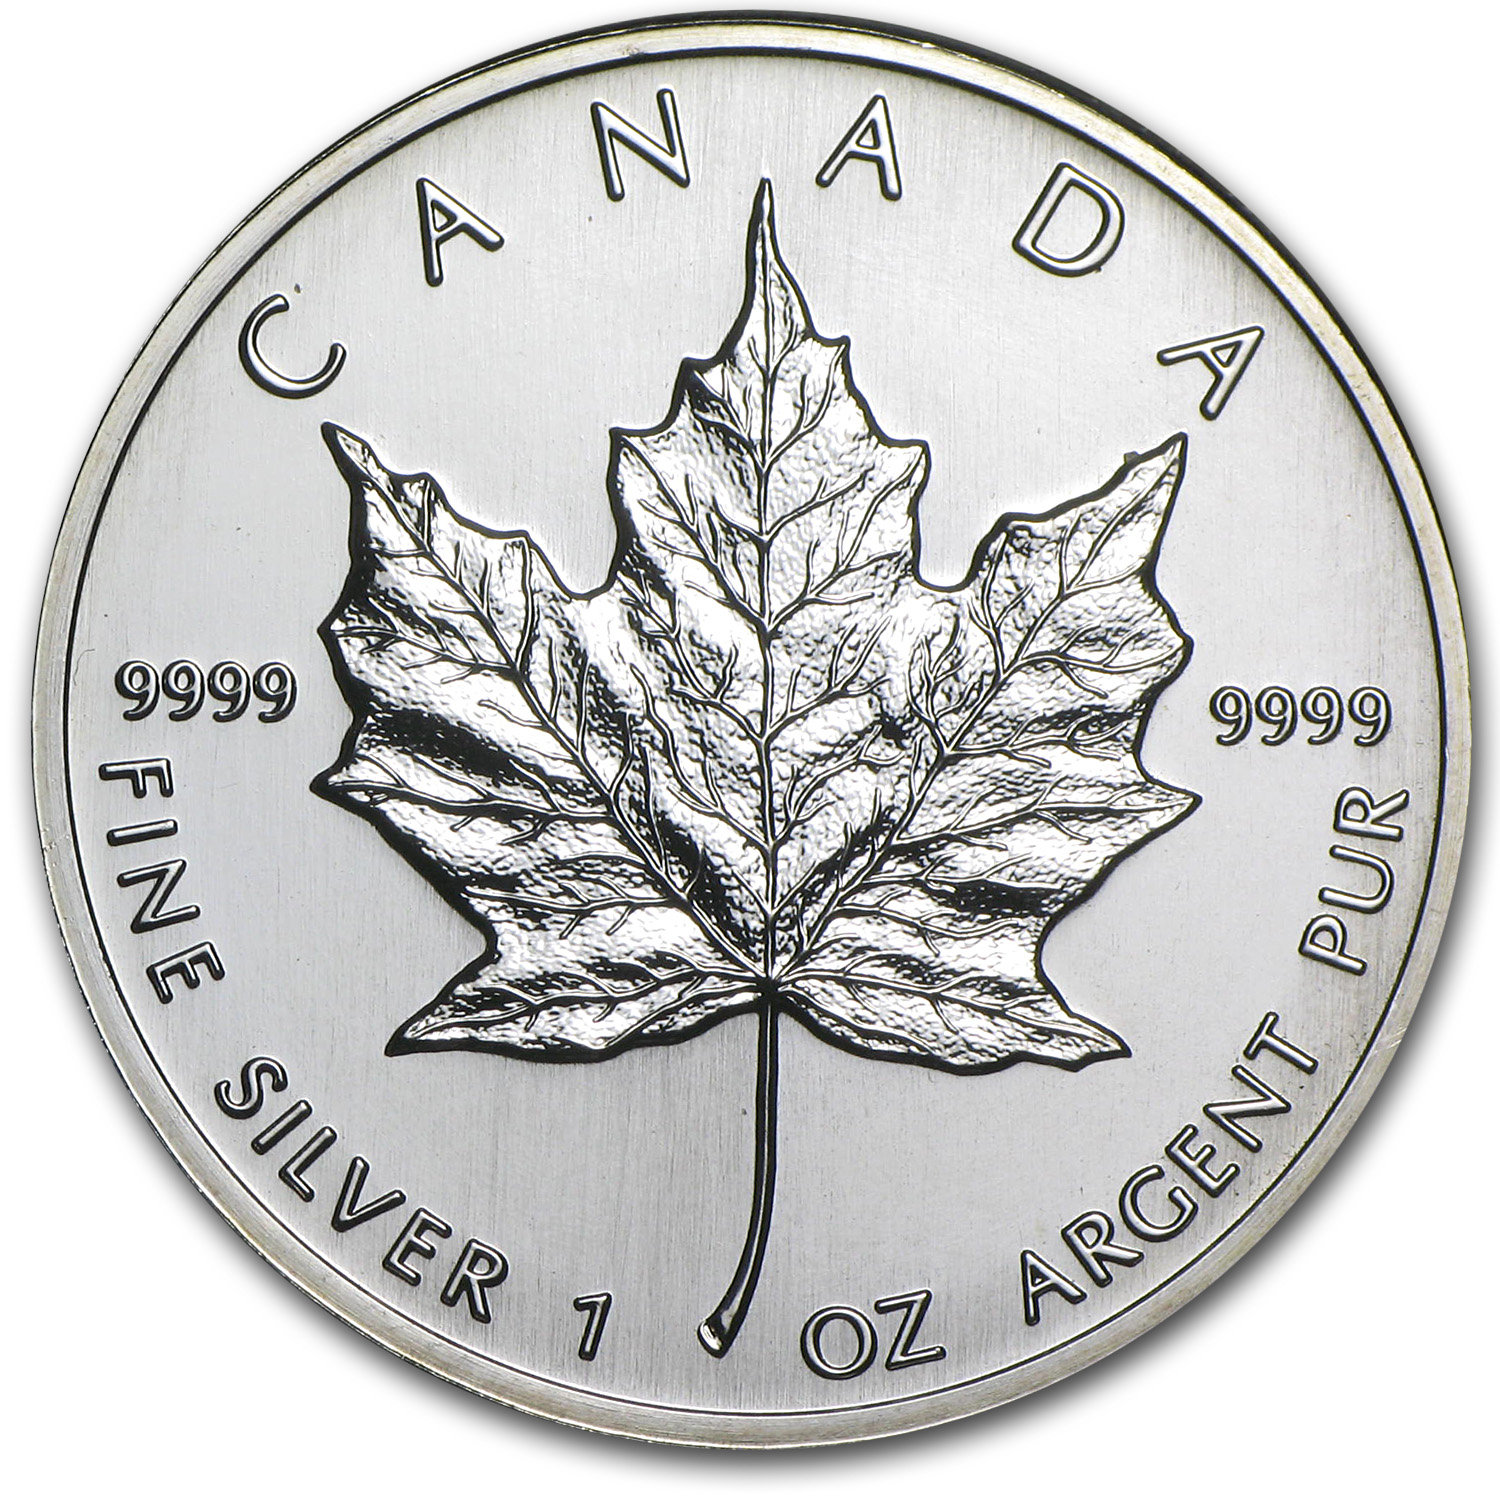 1995 Canada 1 oz Silver Maple Leaf BU